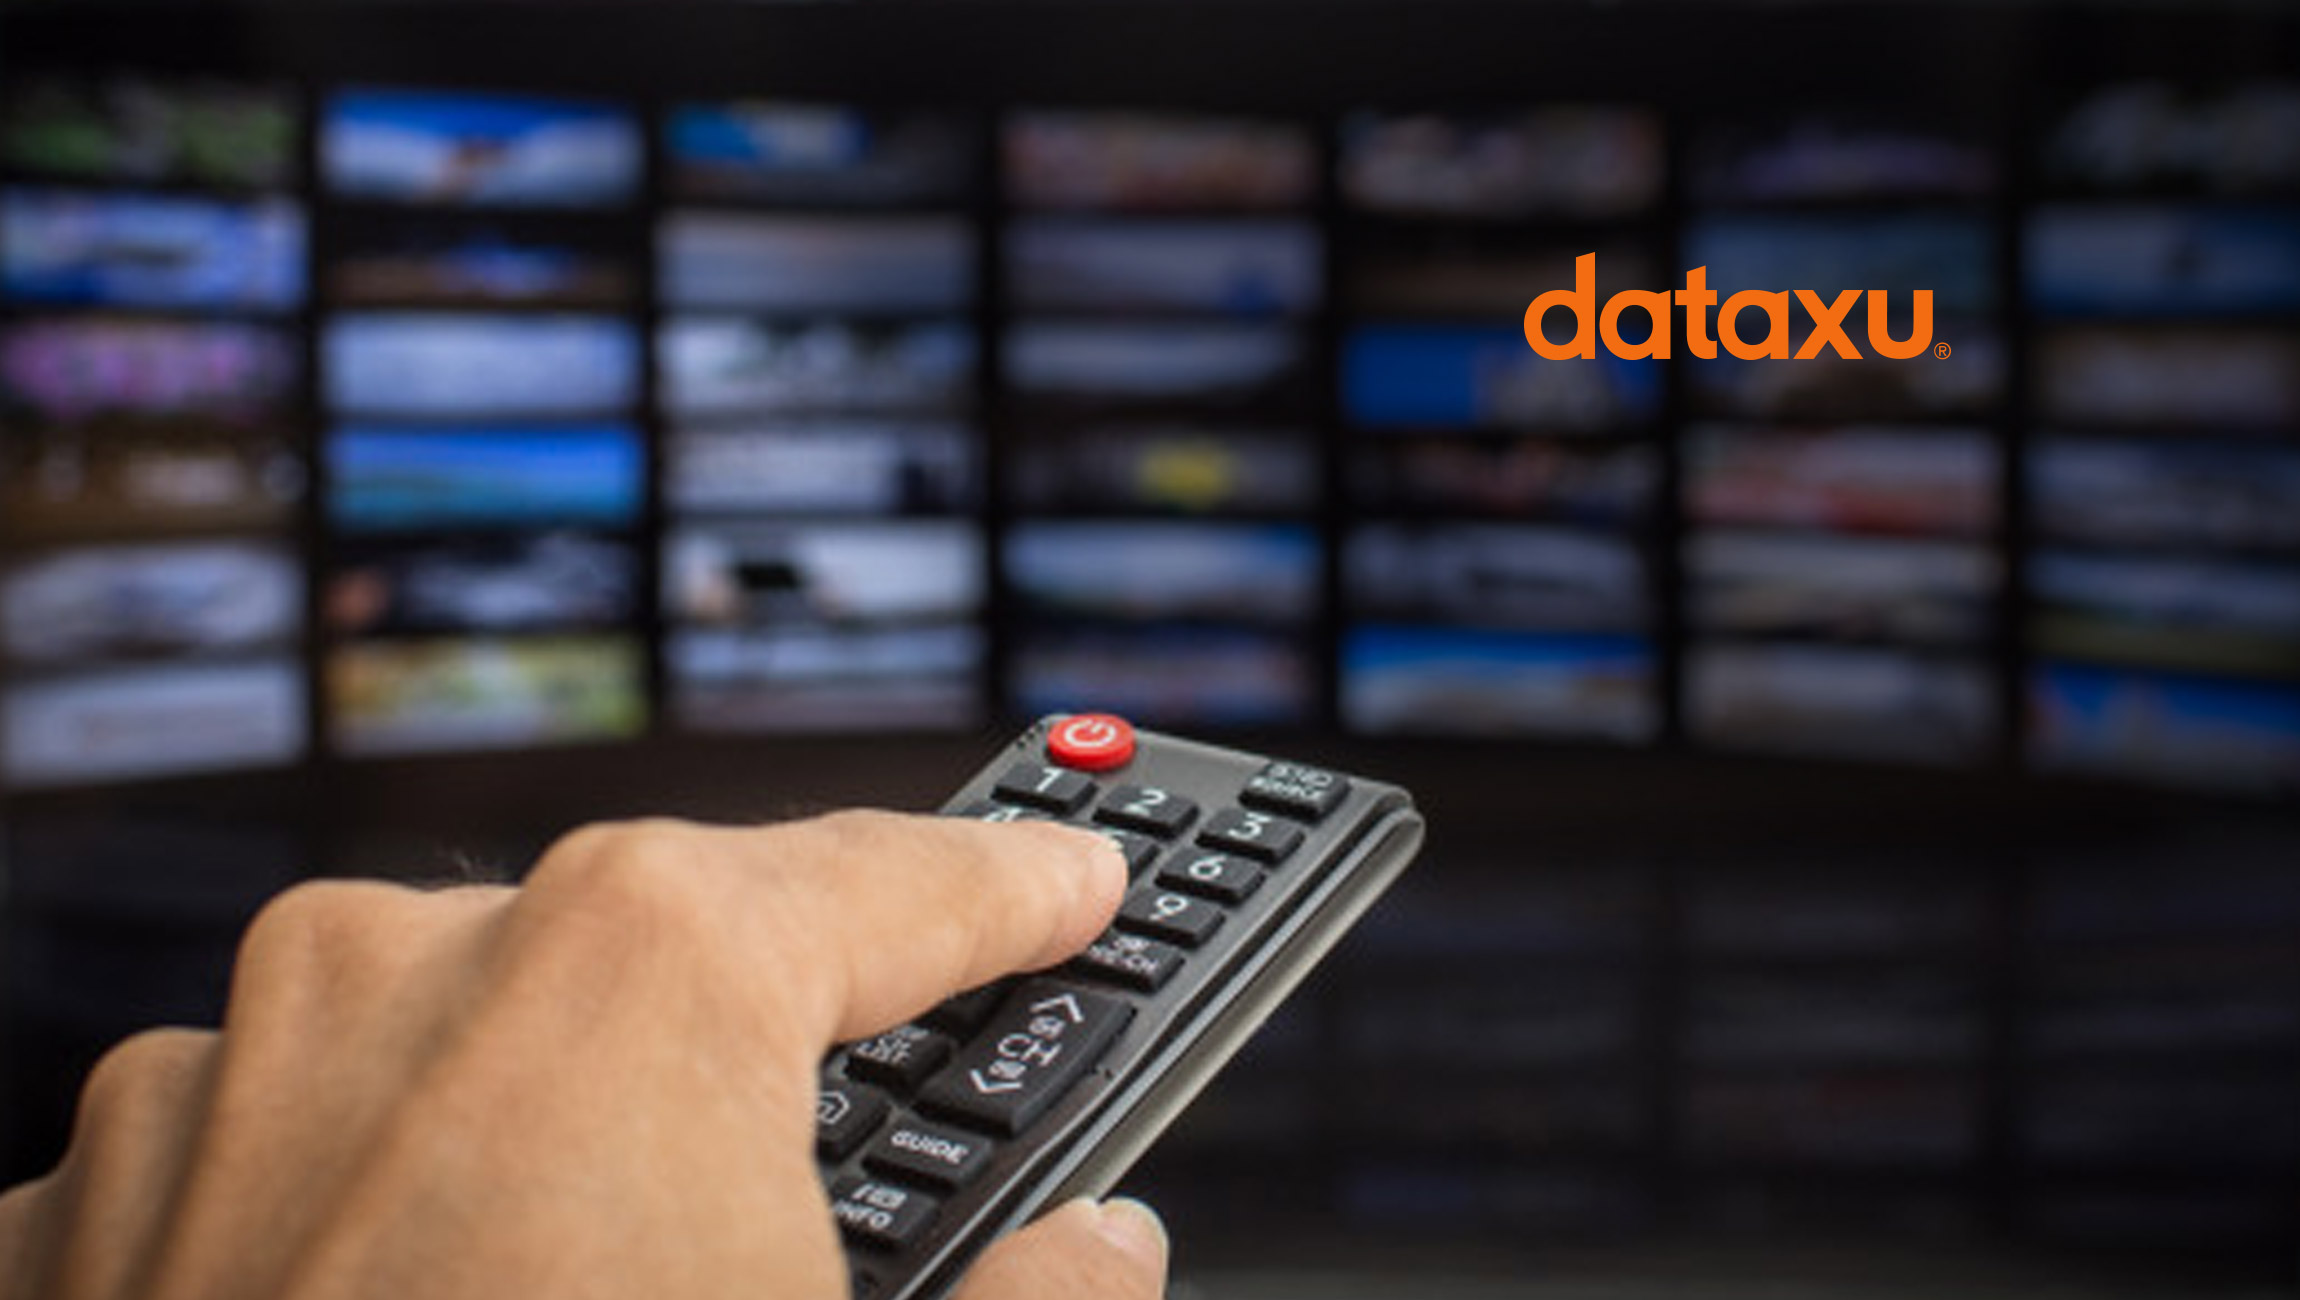 dataxu Partners with Aircast to Launch Southeast Asia's First Programmatic DOOH Offering